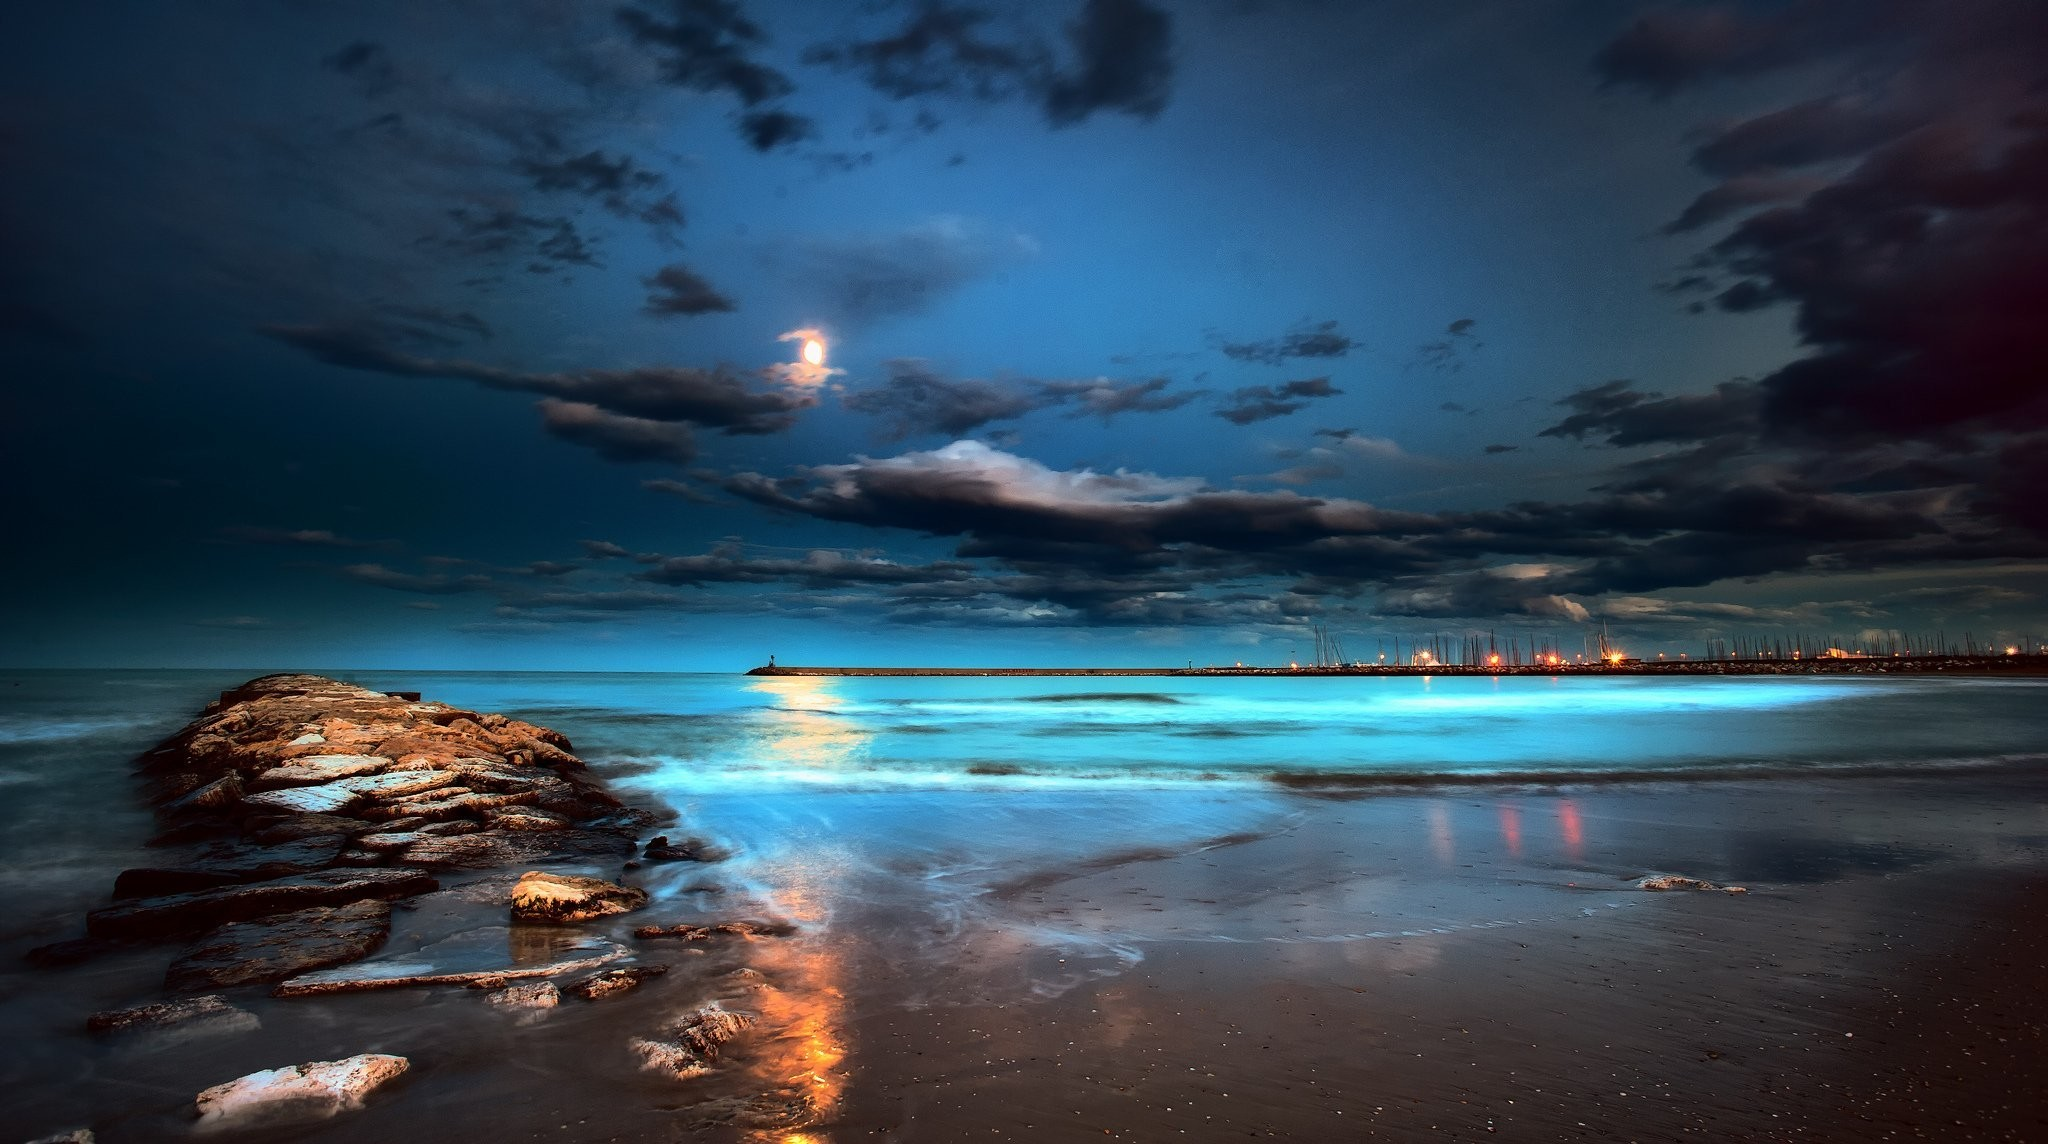 beach at night wallpaper (75+ images)